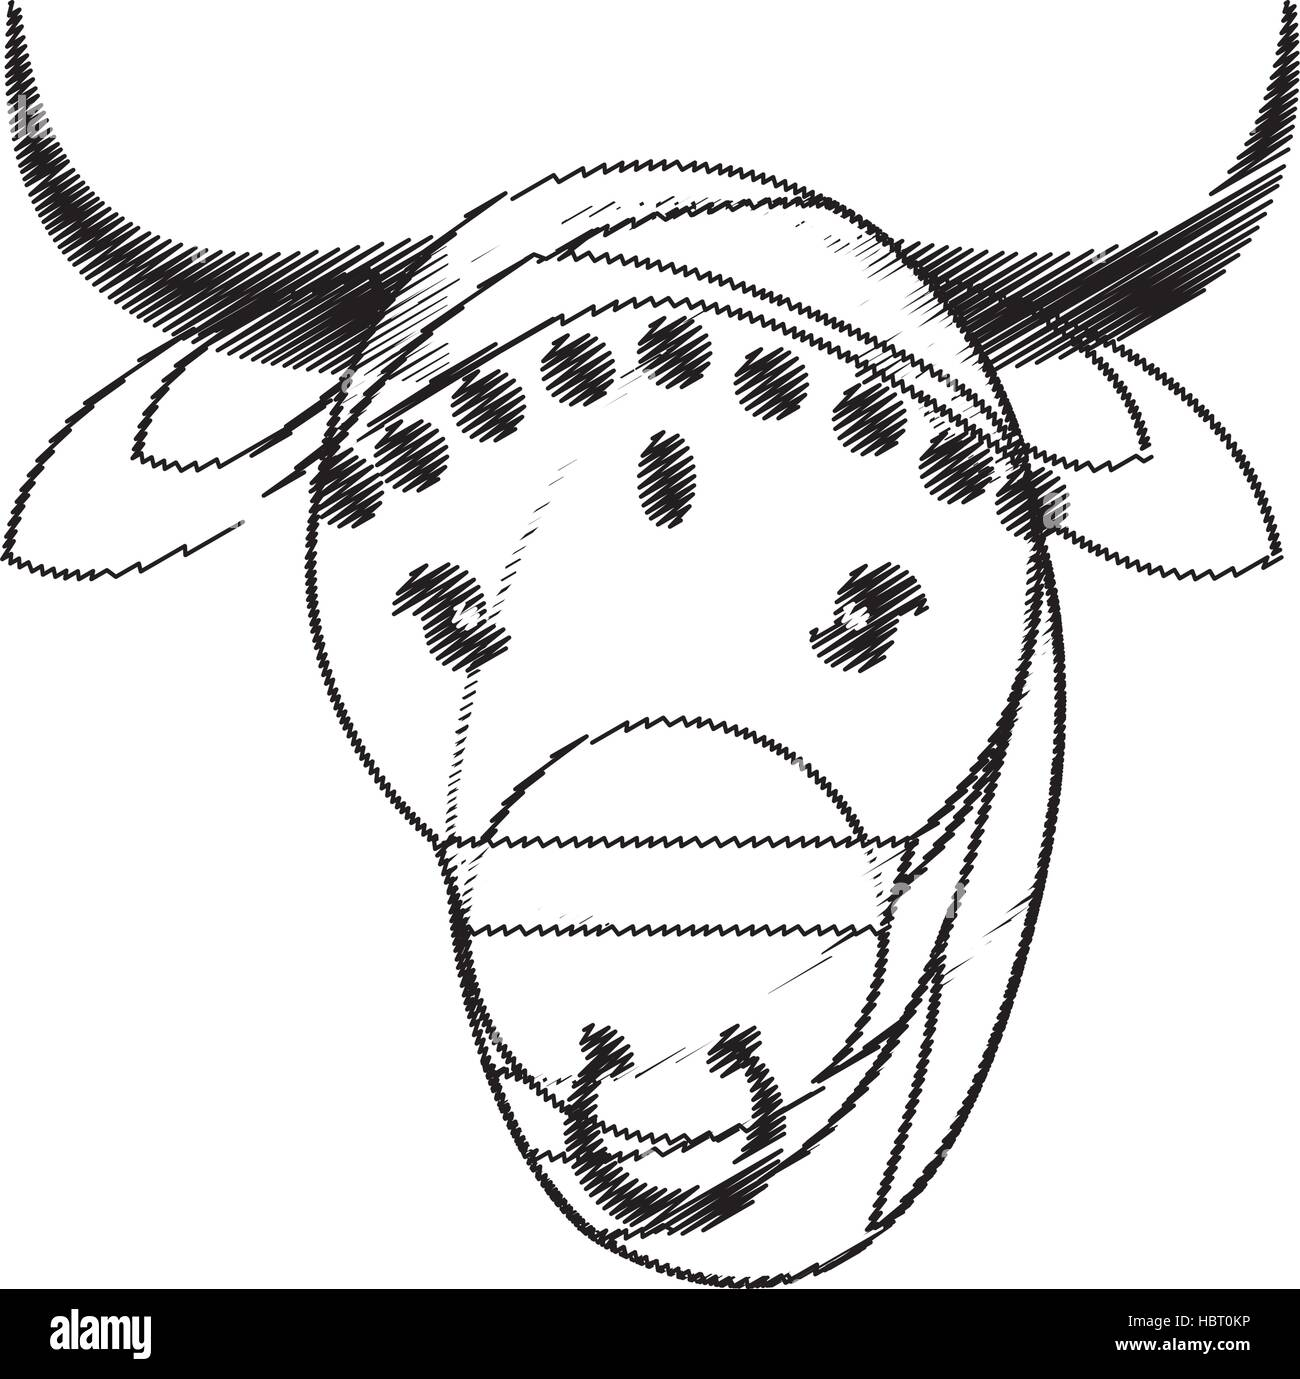 head indian sacred cow fertility and maternity symbol - Stock Image